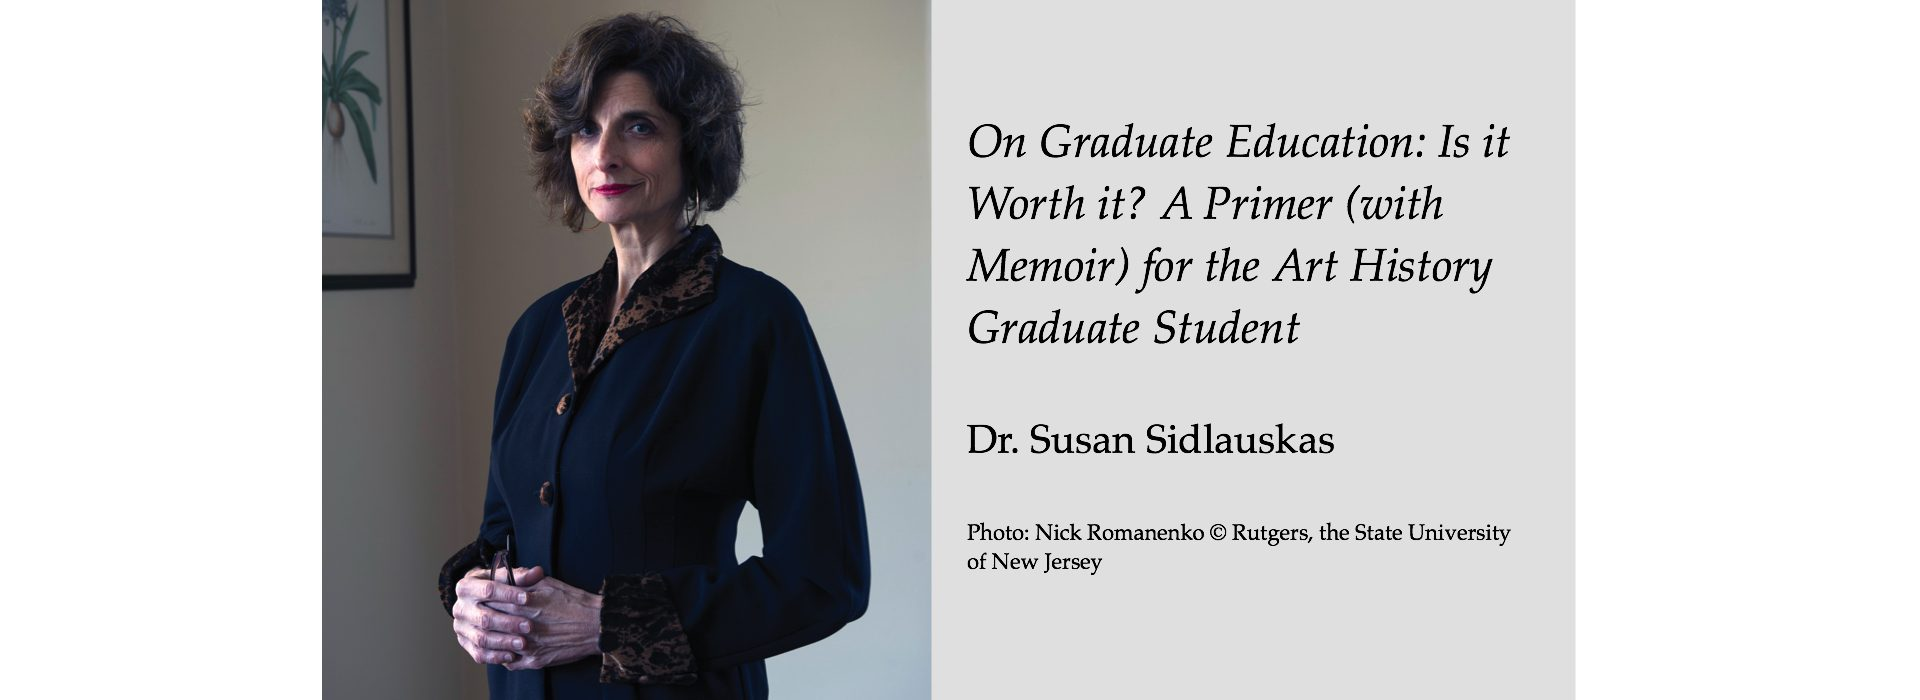 "Permalink to: ""On Graduate Education: Is it Worth it? A Primer (with Memoir) for the Art History Graduate Student"" by Dr. Susan Sidlauskas"